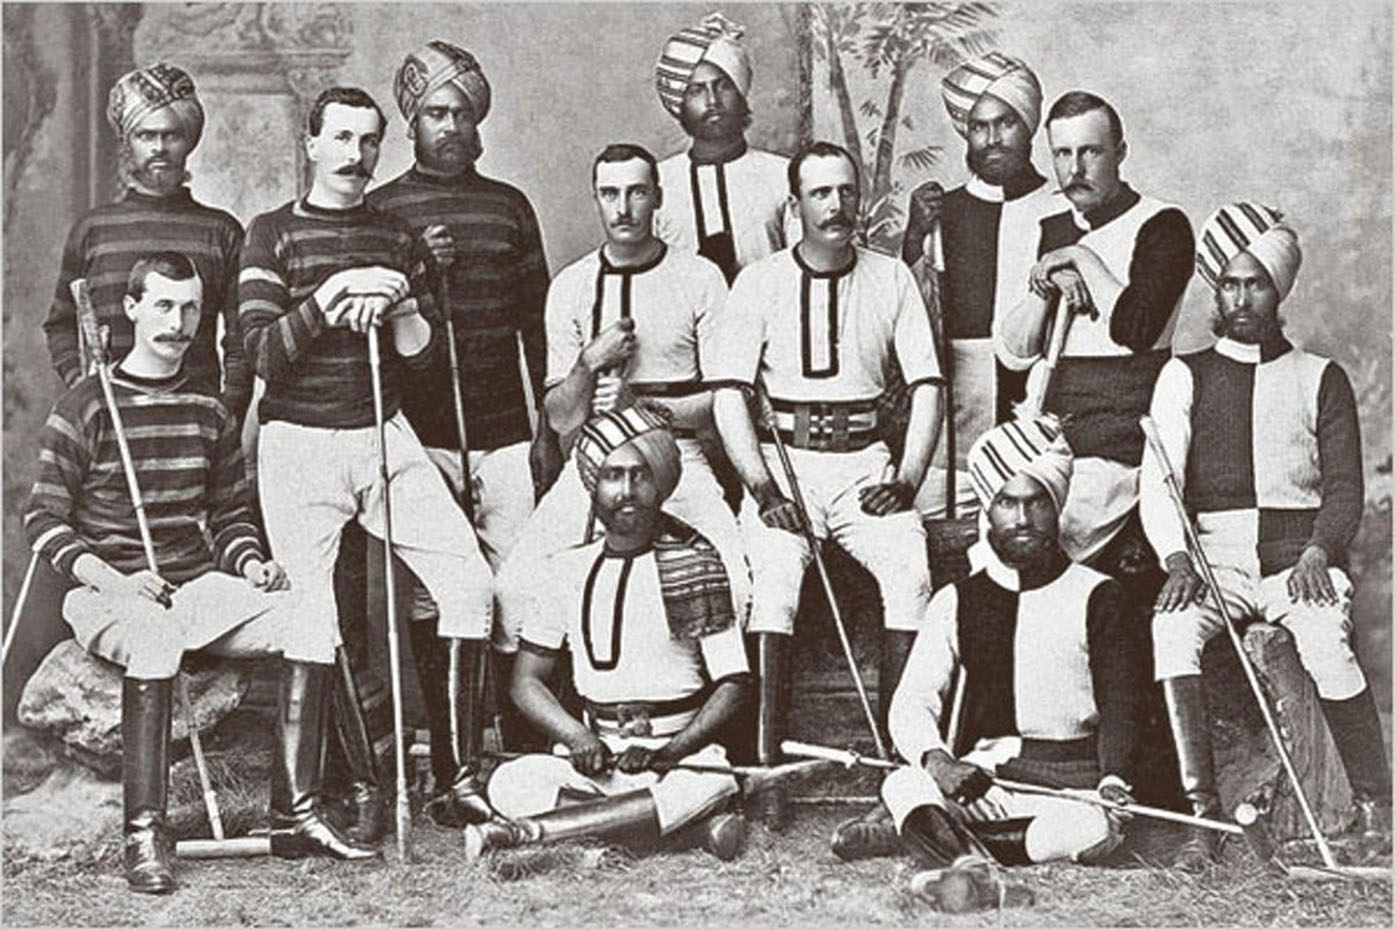 Member of a British army polo team in Hyderabad, India, 1900